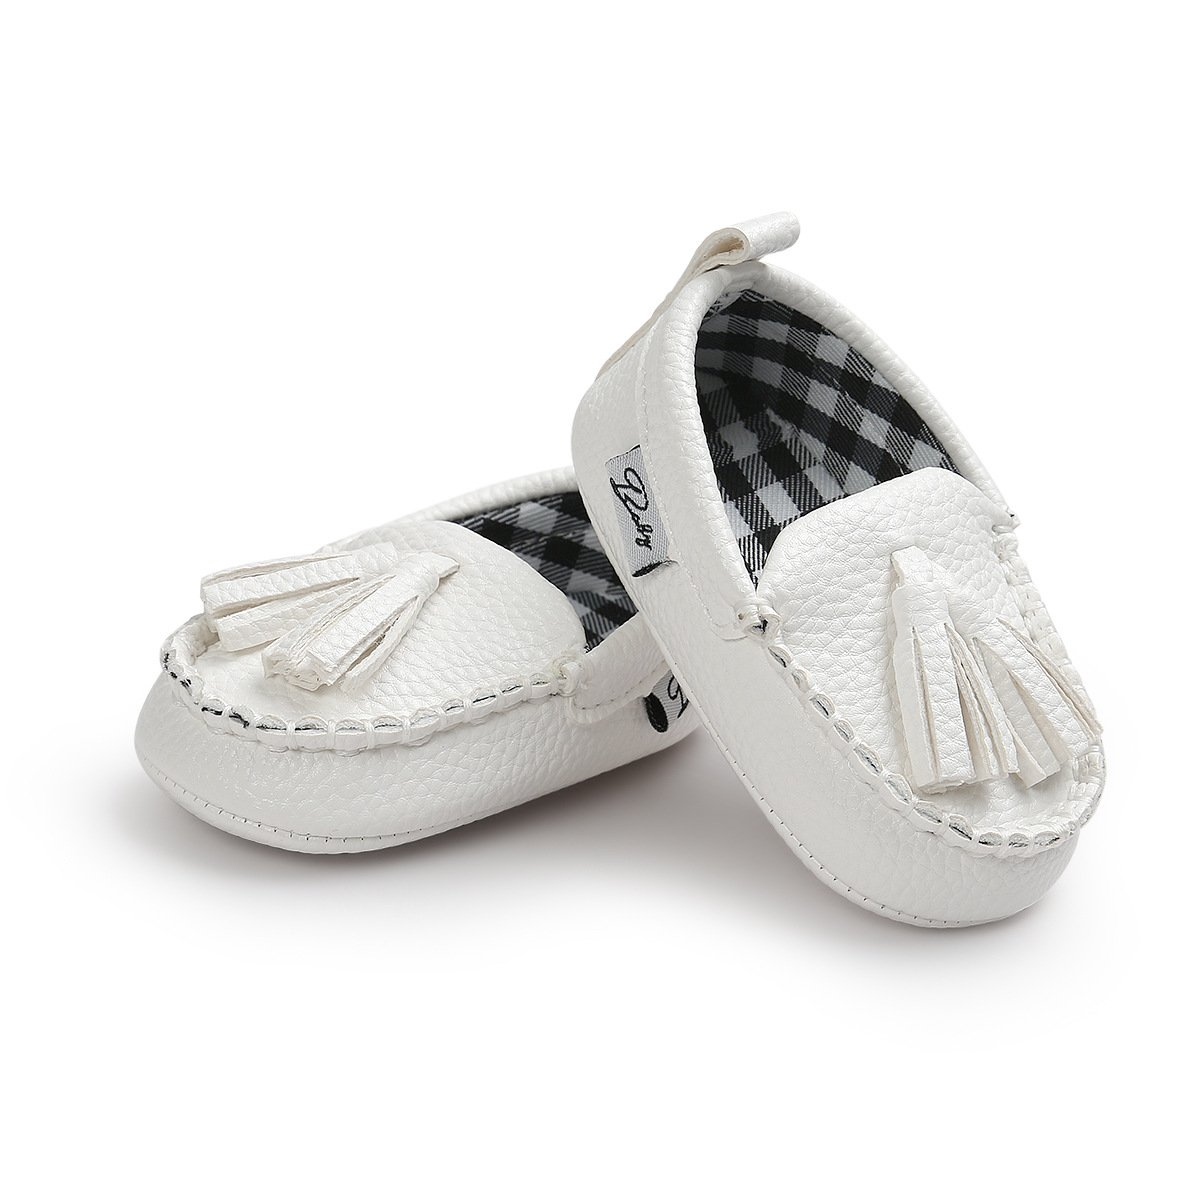 Infant Baby Boys Girls Loafers Tassels Soft Sole Sneakers First Walkers Crib Shoes Flat Boat Dress Shoes Moccasins